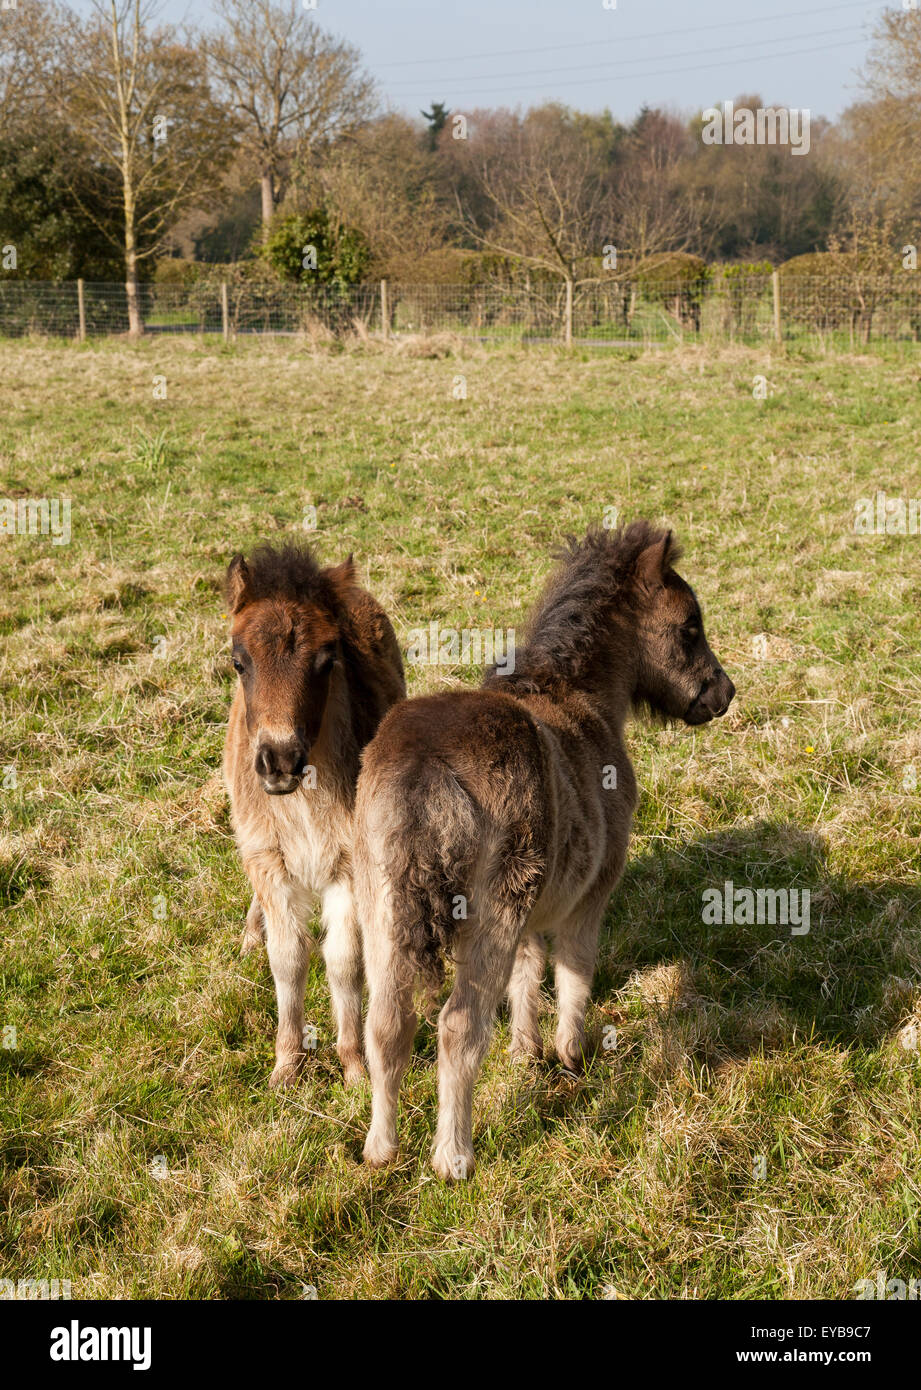 Two young pony foals standing nose to tail - Stock Image